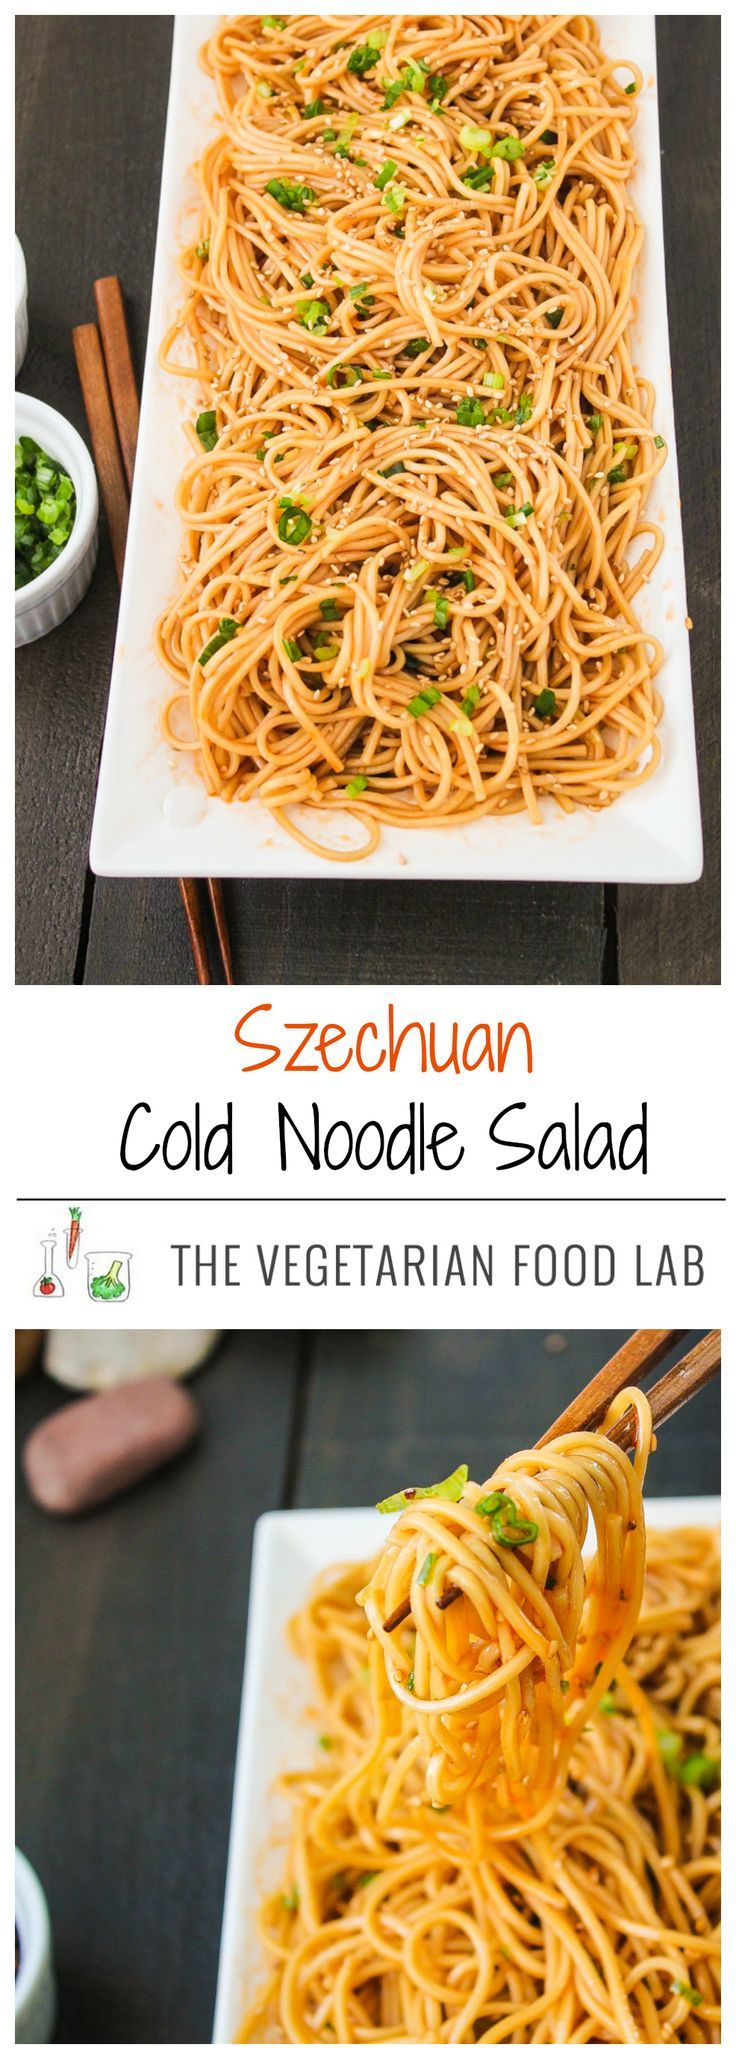 Szechuan Cold Noodle Salad. Spicy and satisfying!